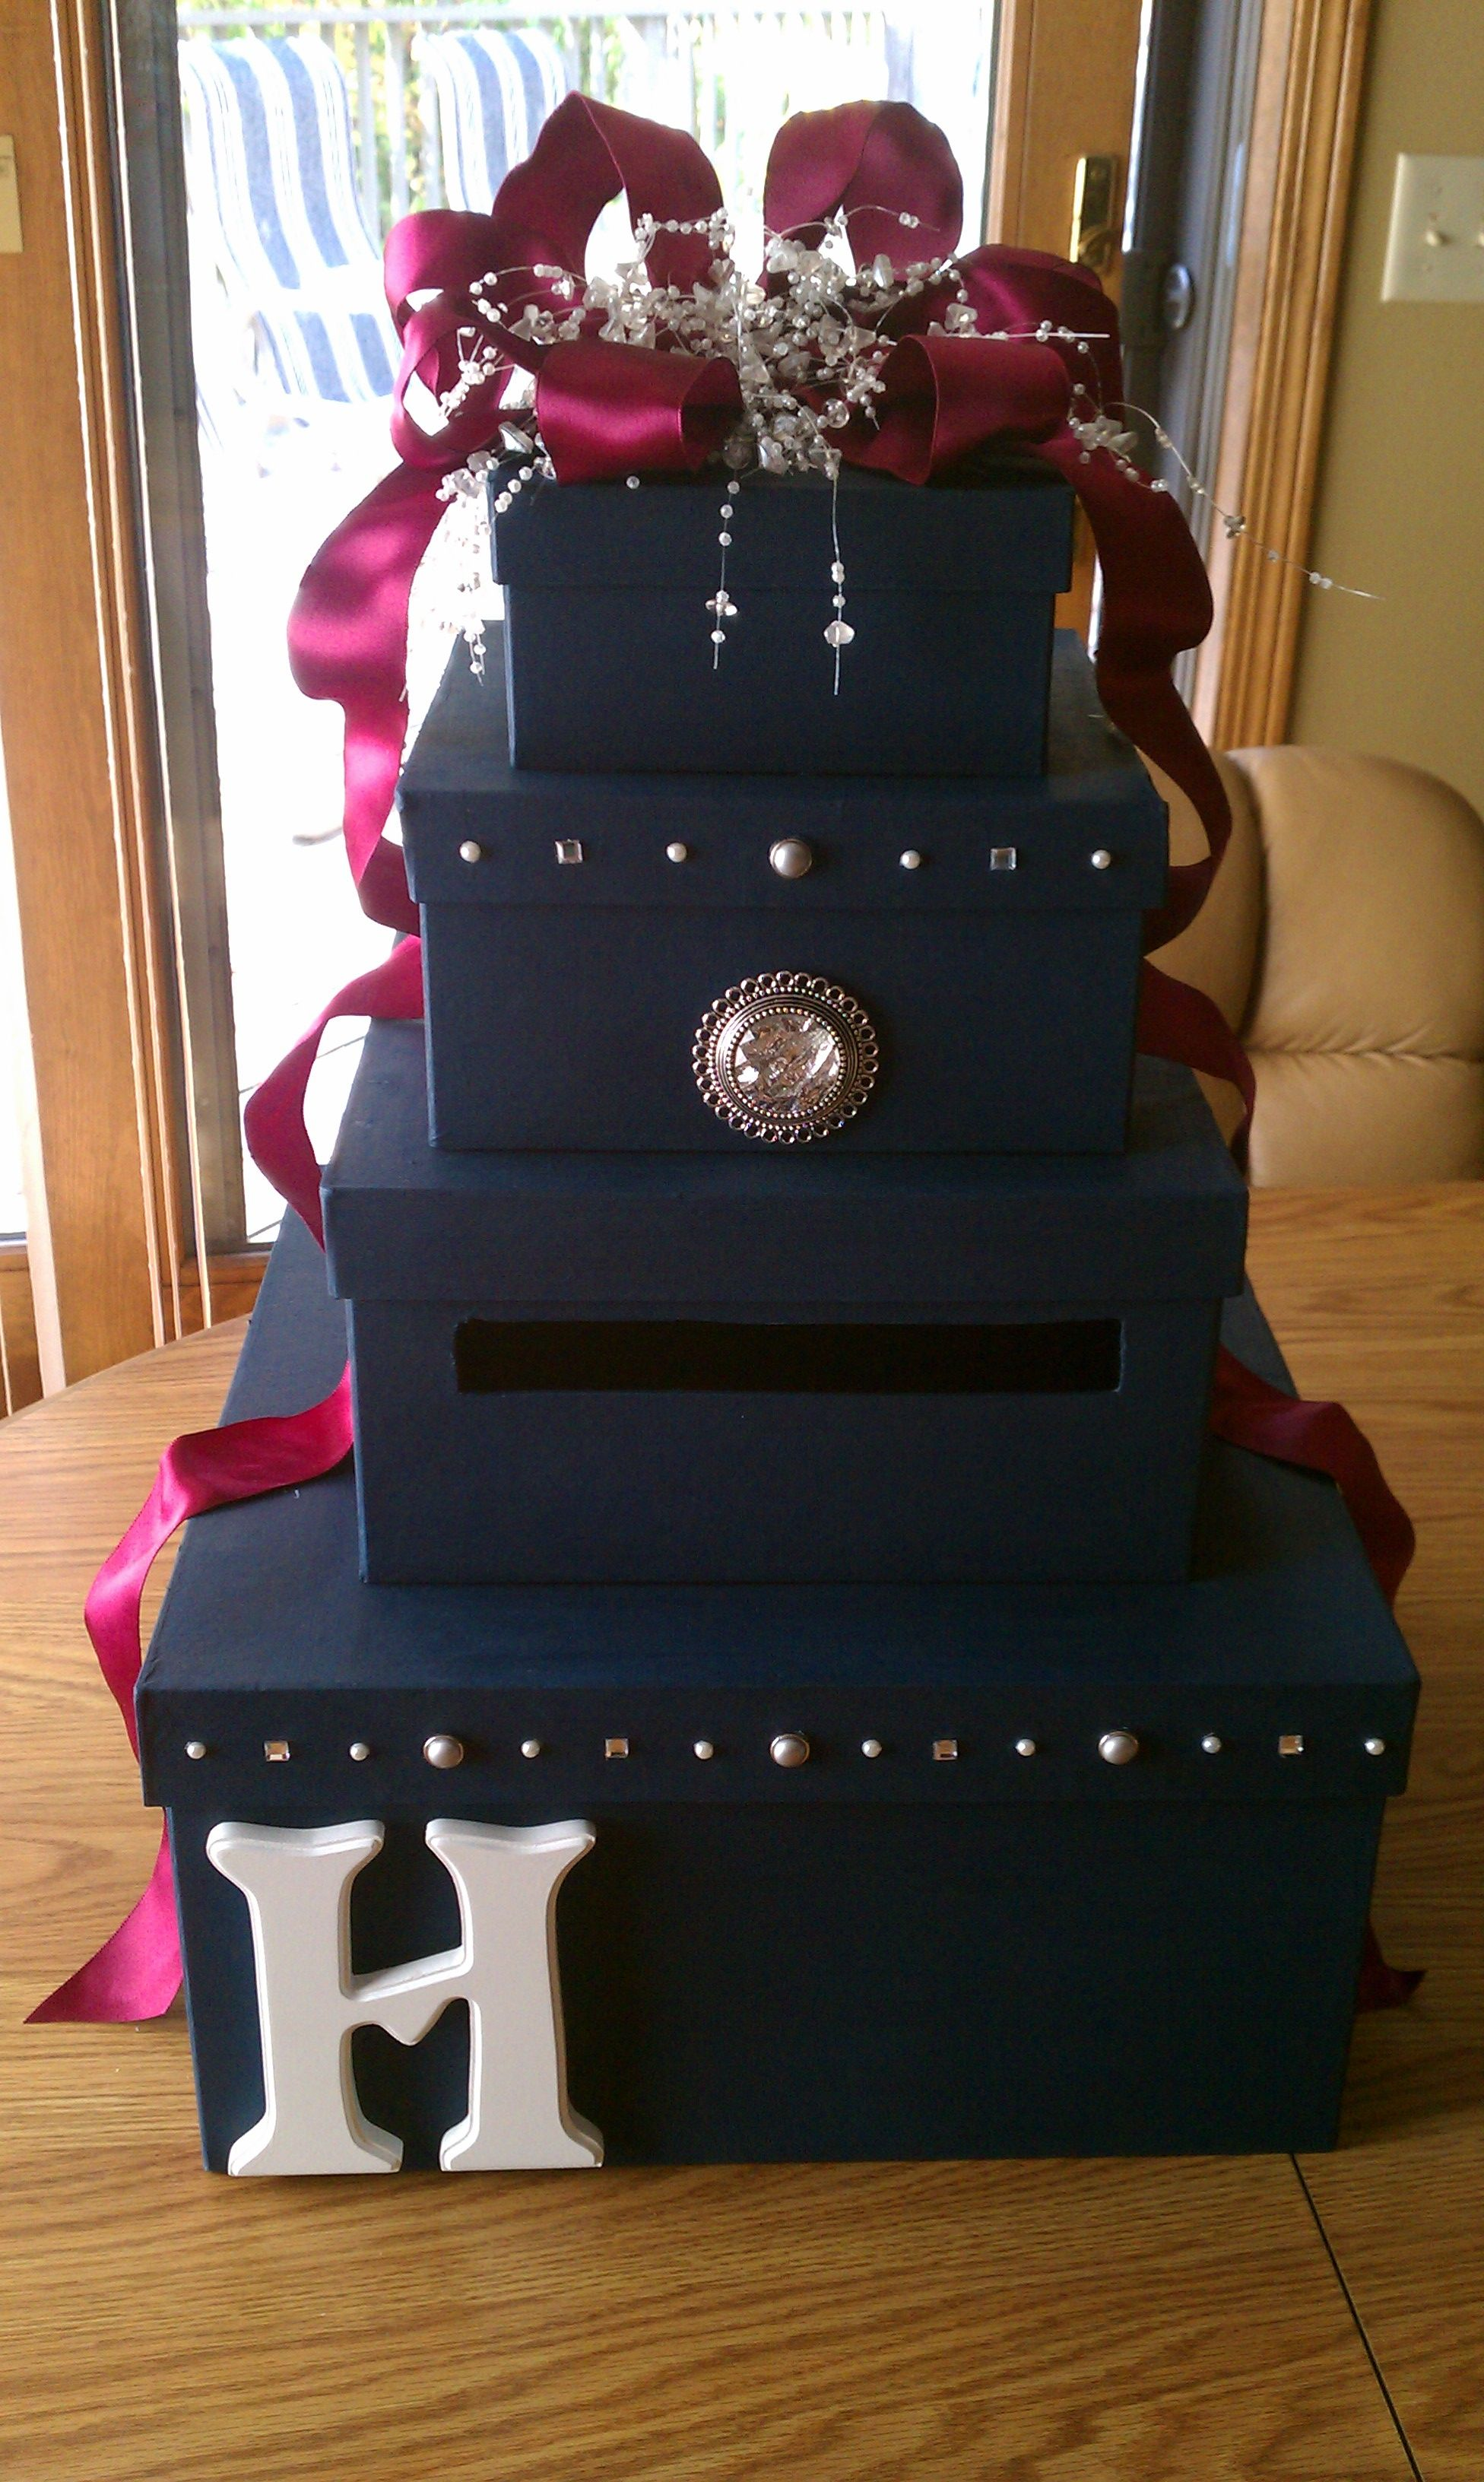 20 Diy Memory Box Graduation Pictures And Ideas On Carver Museum